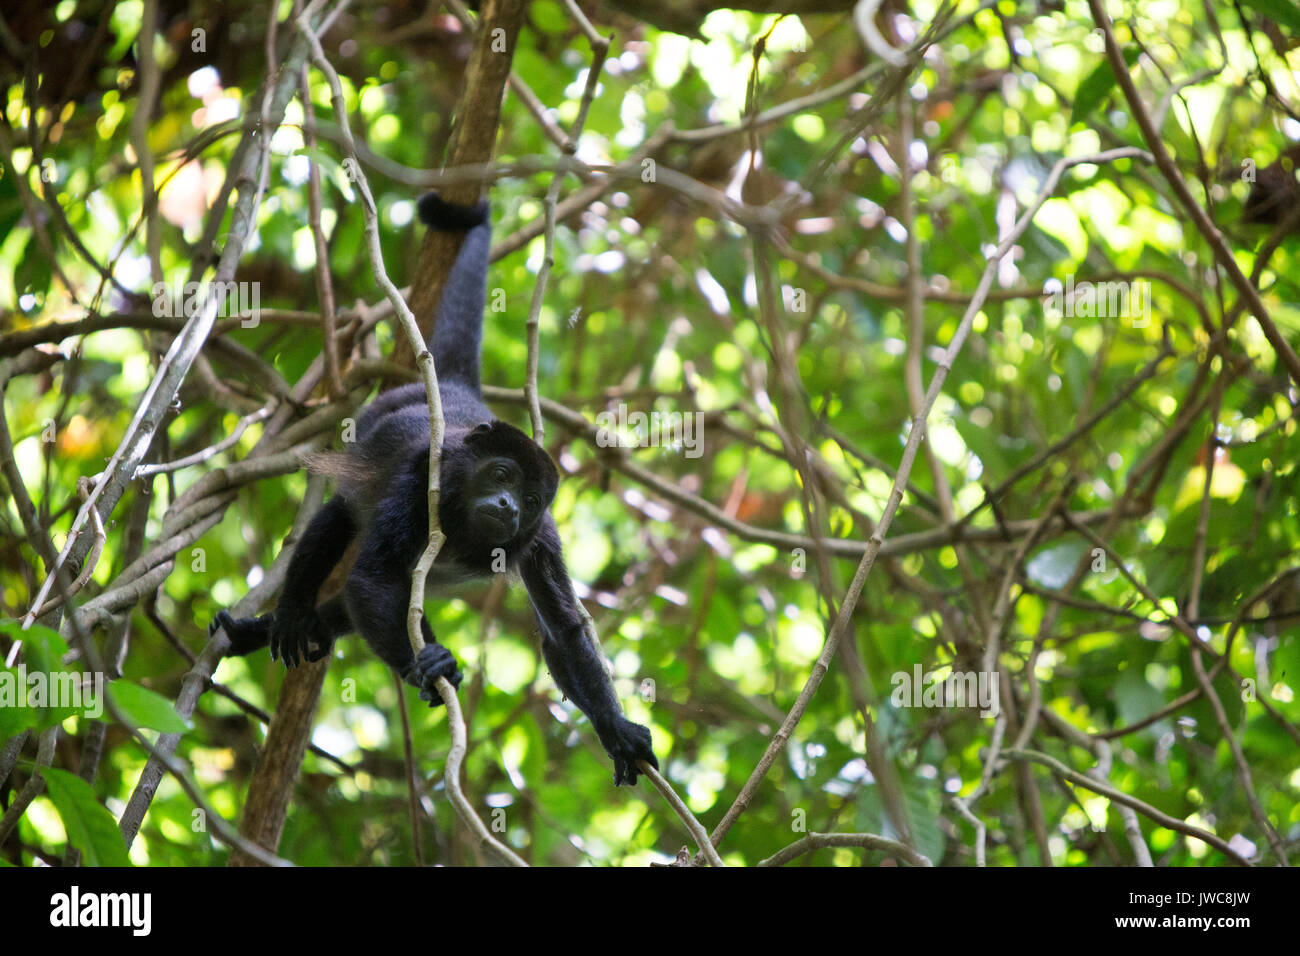 A howler monkey uses its tail to grip a tree branch as it crawls through a tree canopy. - Stock Image